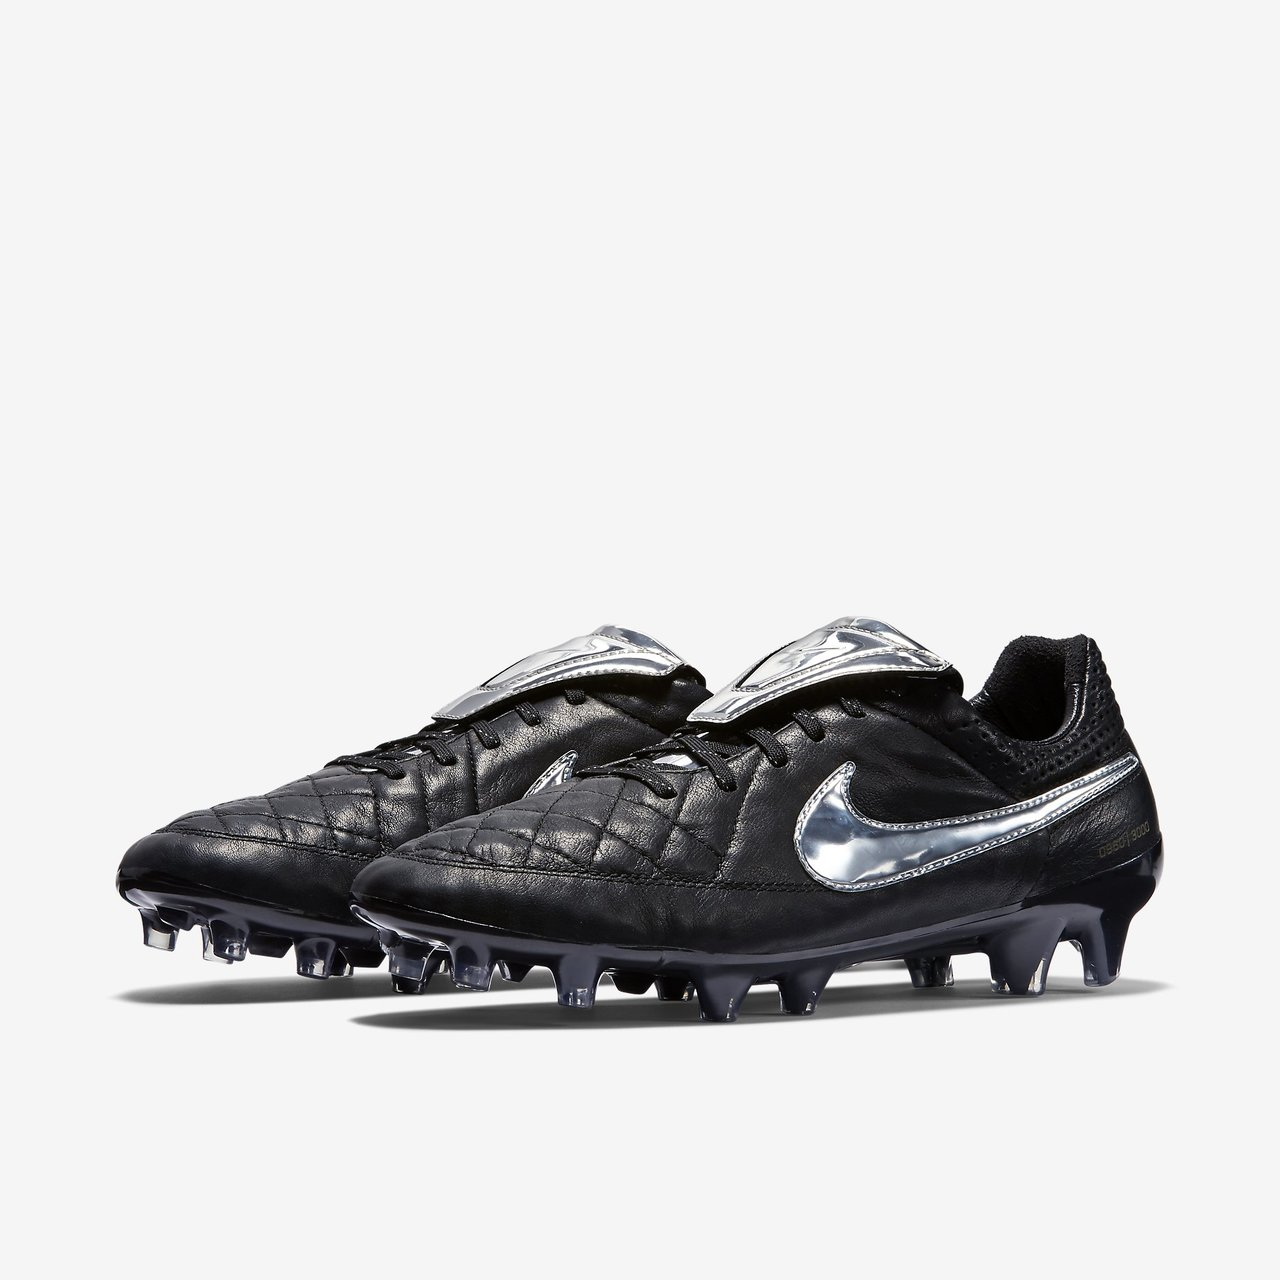 sports shoes 1a864 185af coupon code nike tiempo legend totti for sale us 05696 7a59a